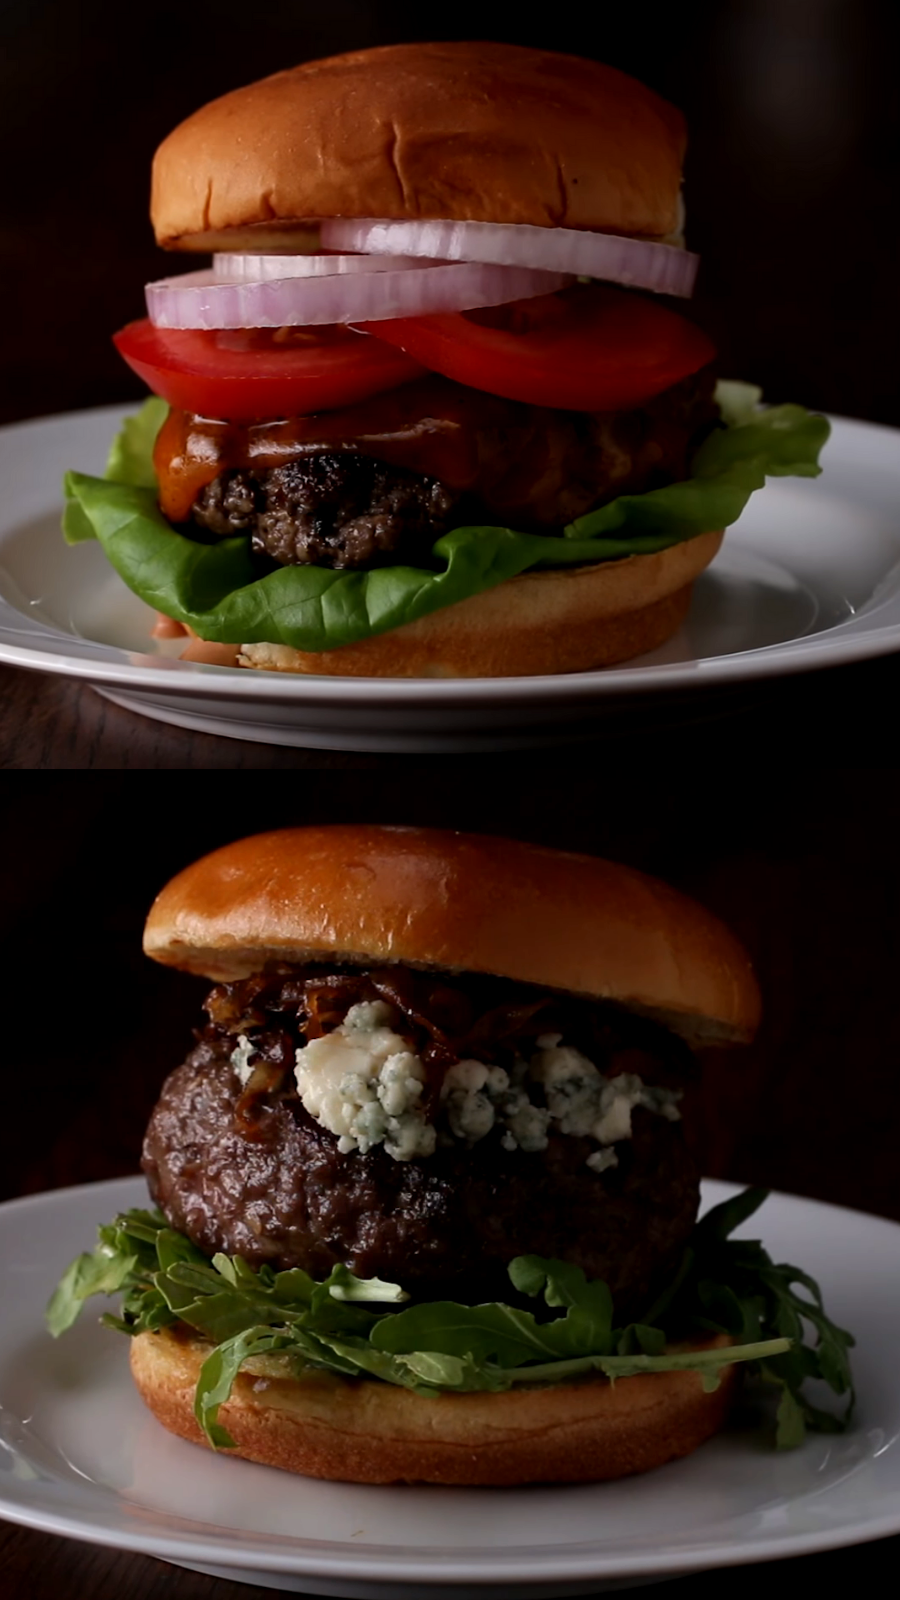 Eazy Homemade Burgers So Easy To Prepare And So Delicious Burger Bar Bobs Burgers Fast Food Homemade Burgers Homemade Beef Burgers Homemade Burgers Food